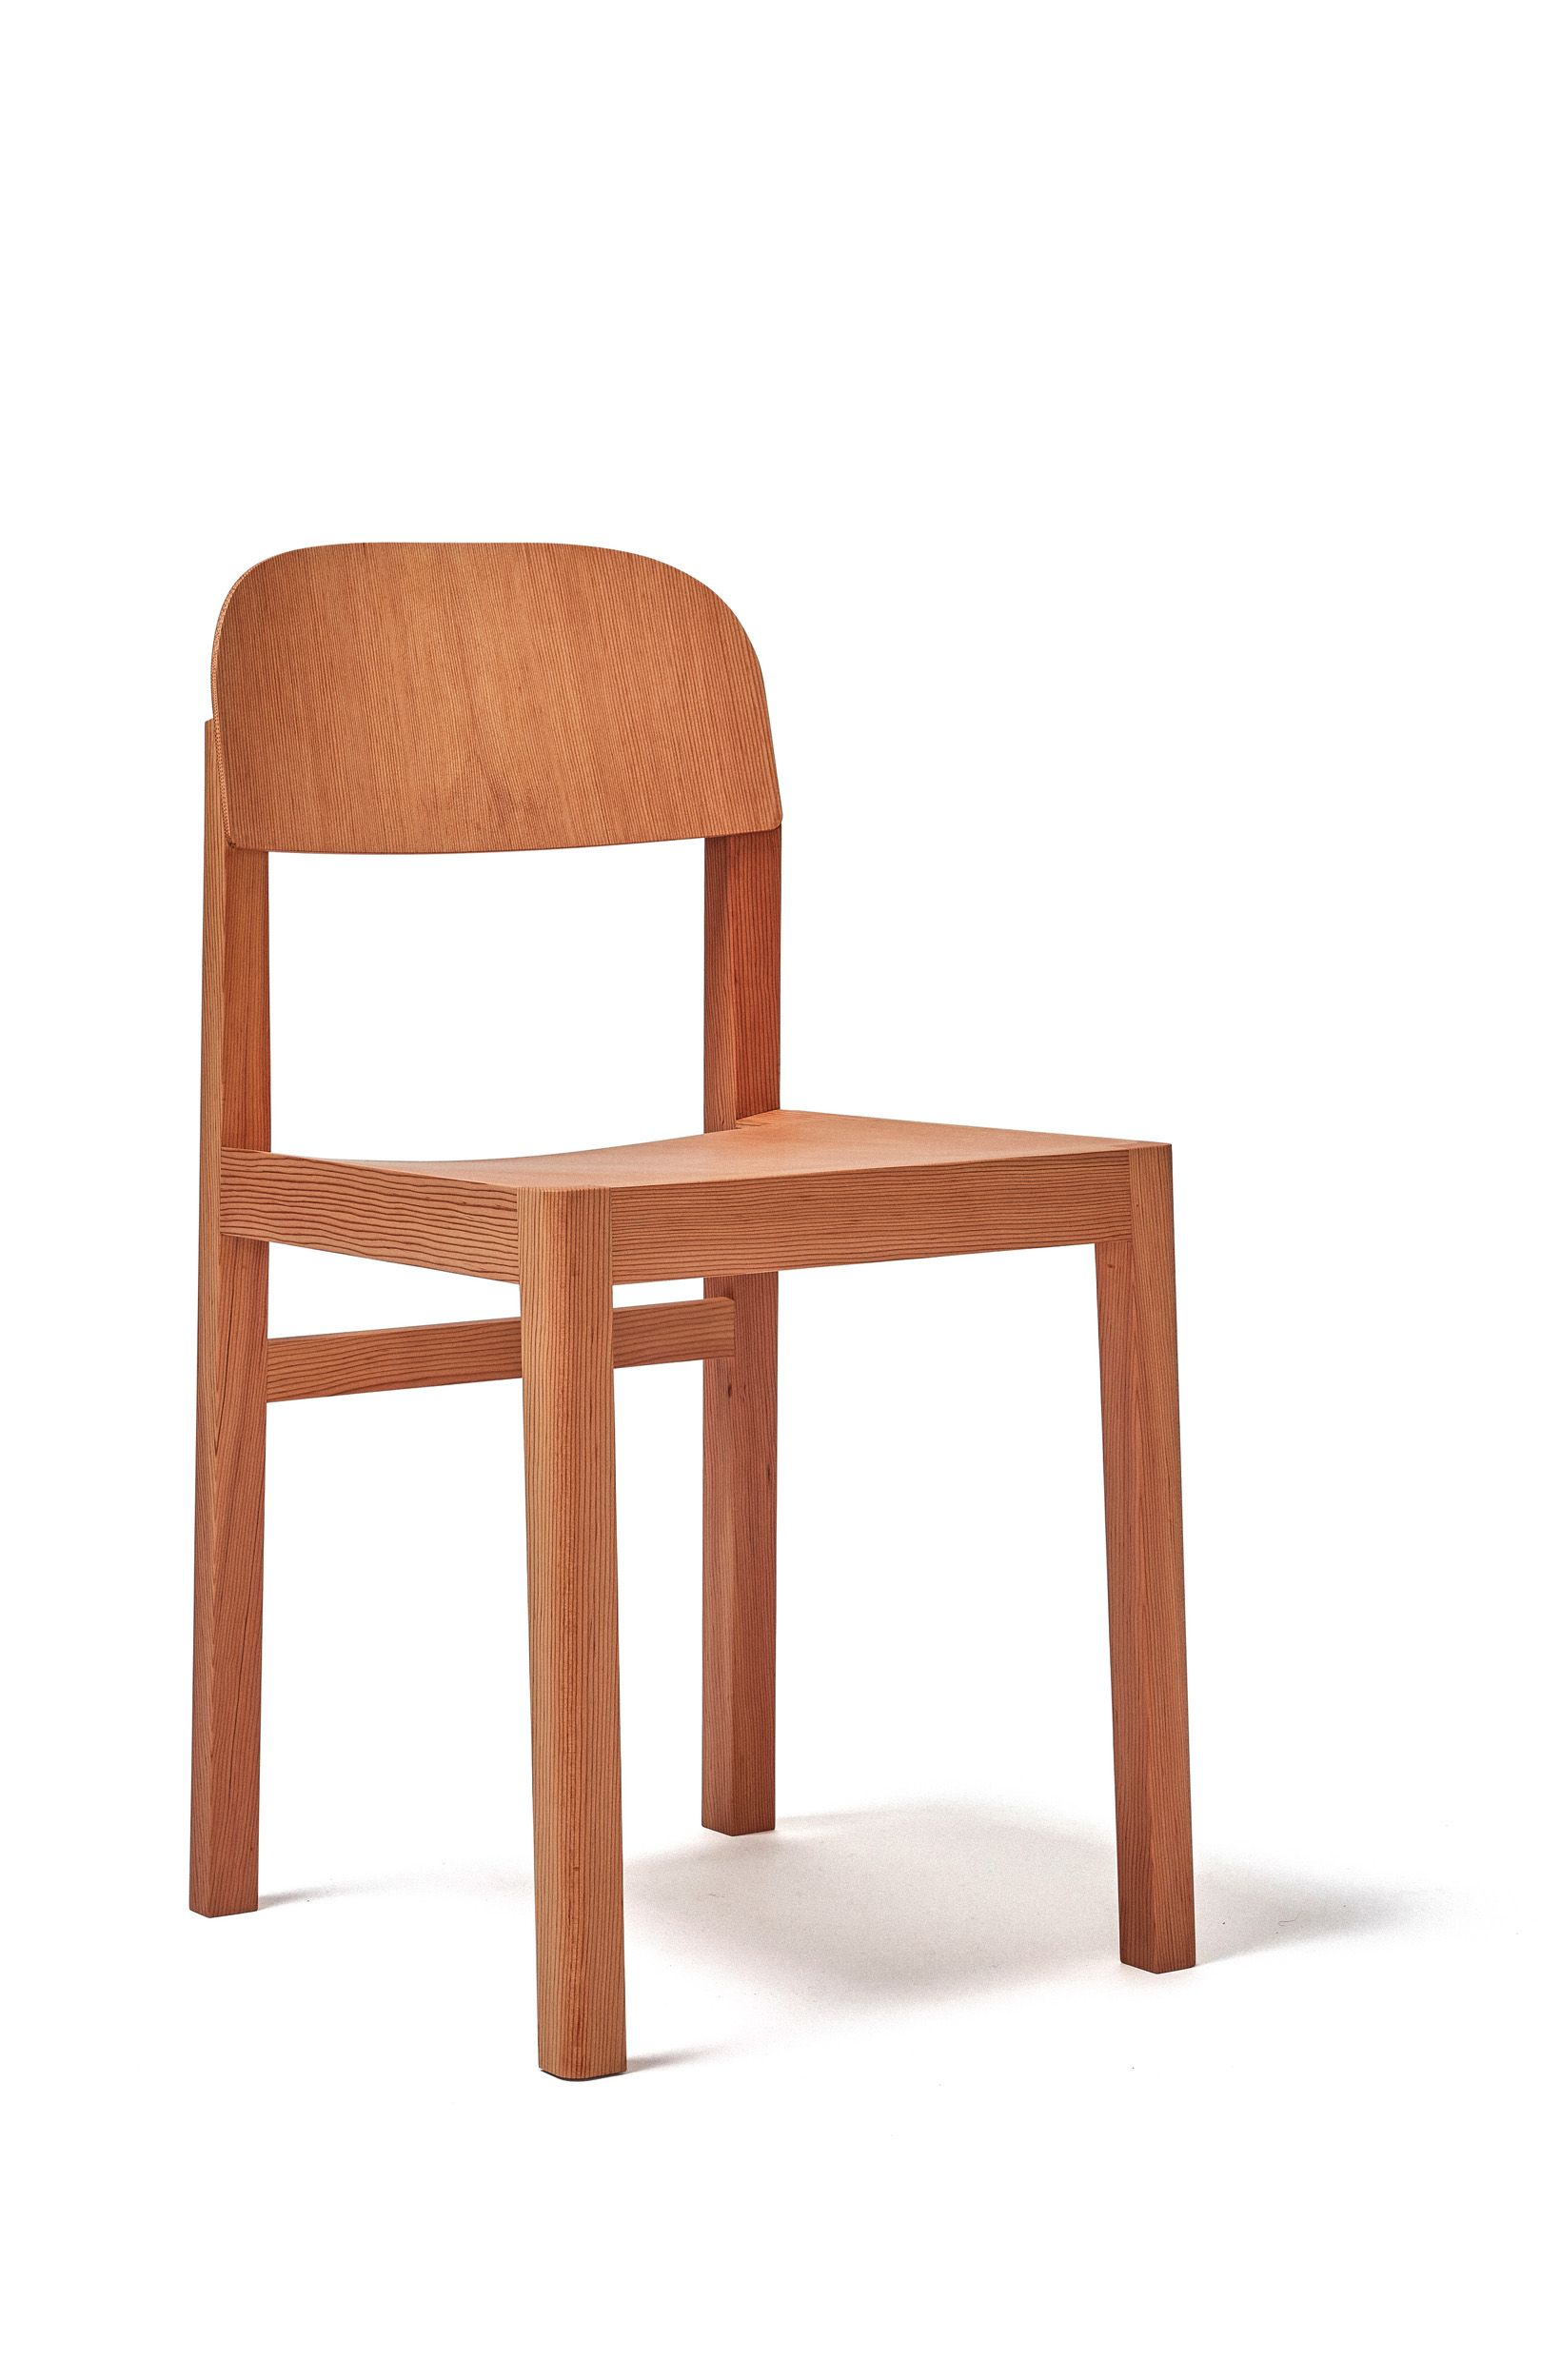 Holzstuhl Eiche Workshop Chair Cecilie Manz Chairs Wood Pinterest